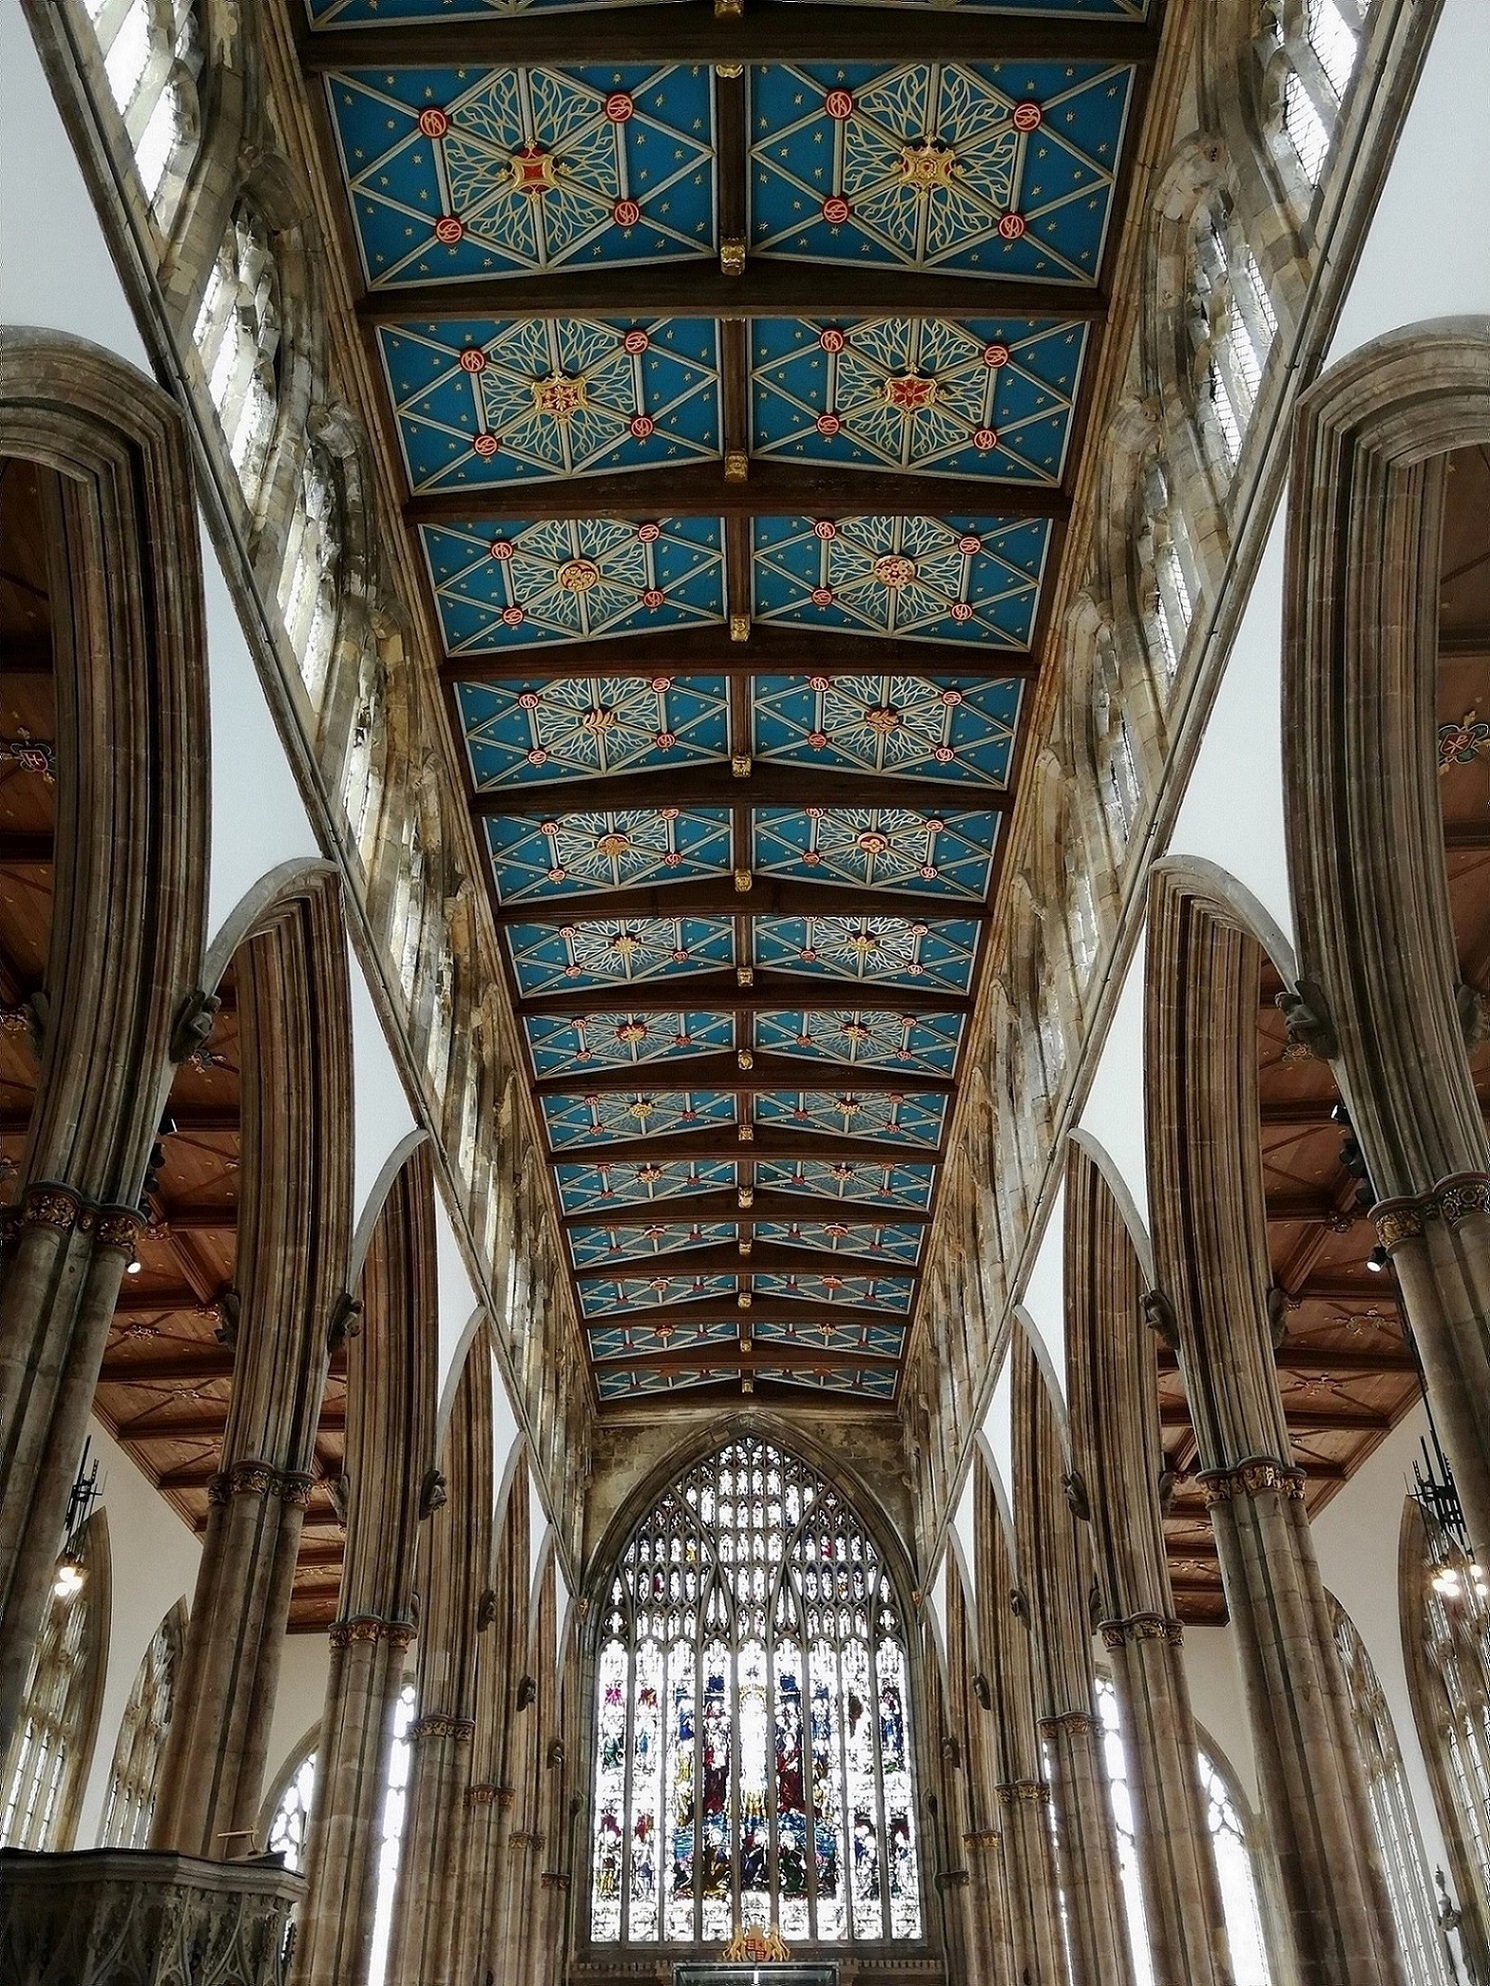 The beautiful Nave roof at Hull Minster, part of the ancient church's rich heritage.